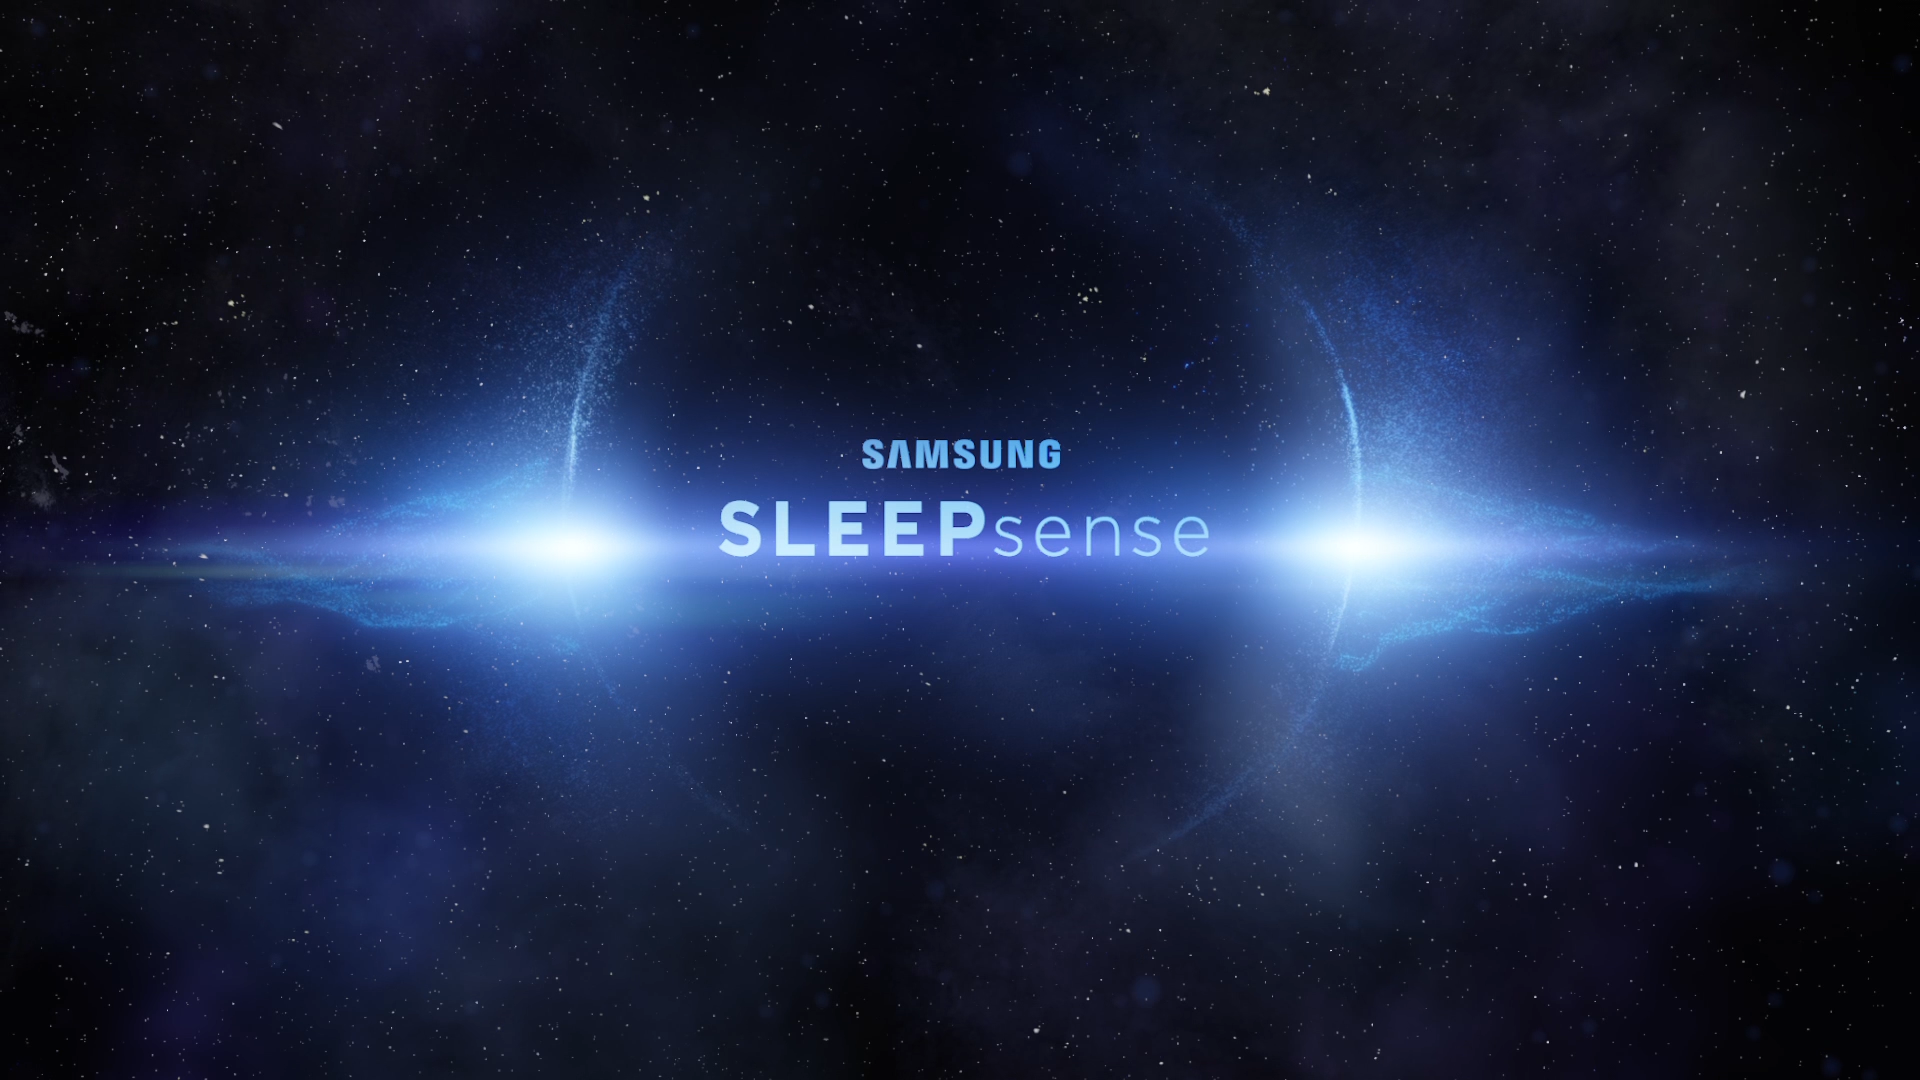 Samsung Sleep Sense (00761)